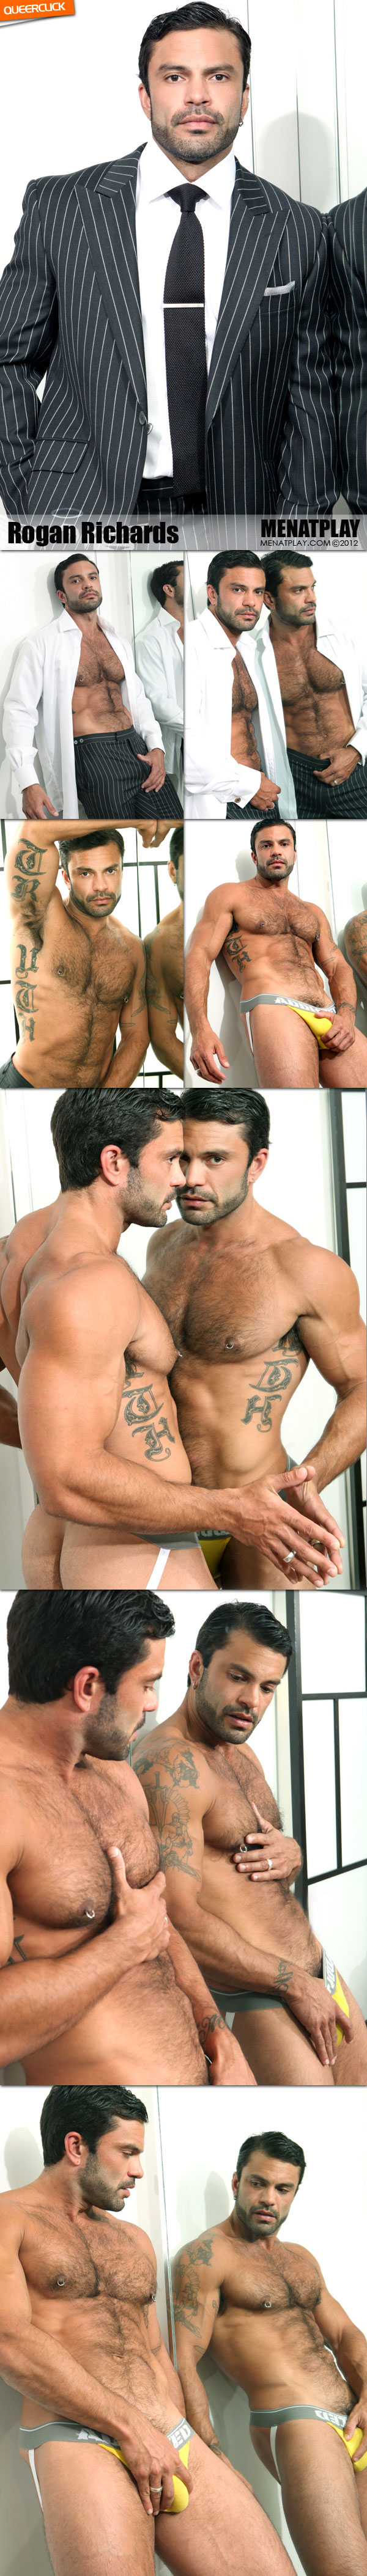 Men At Play: Introducing Rogan Richards